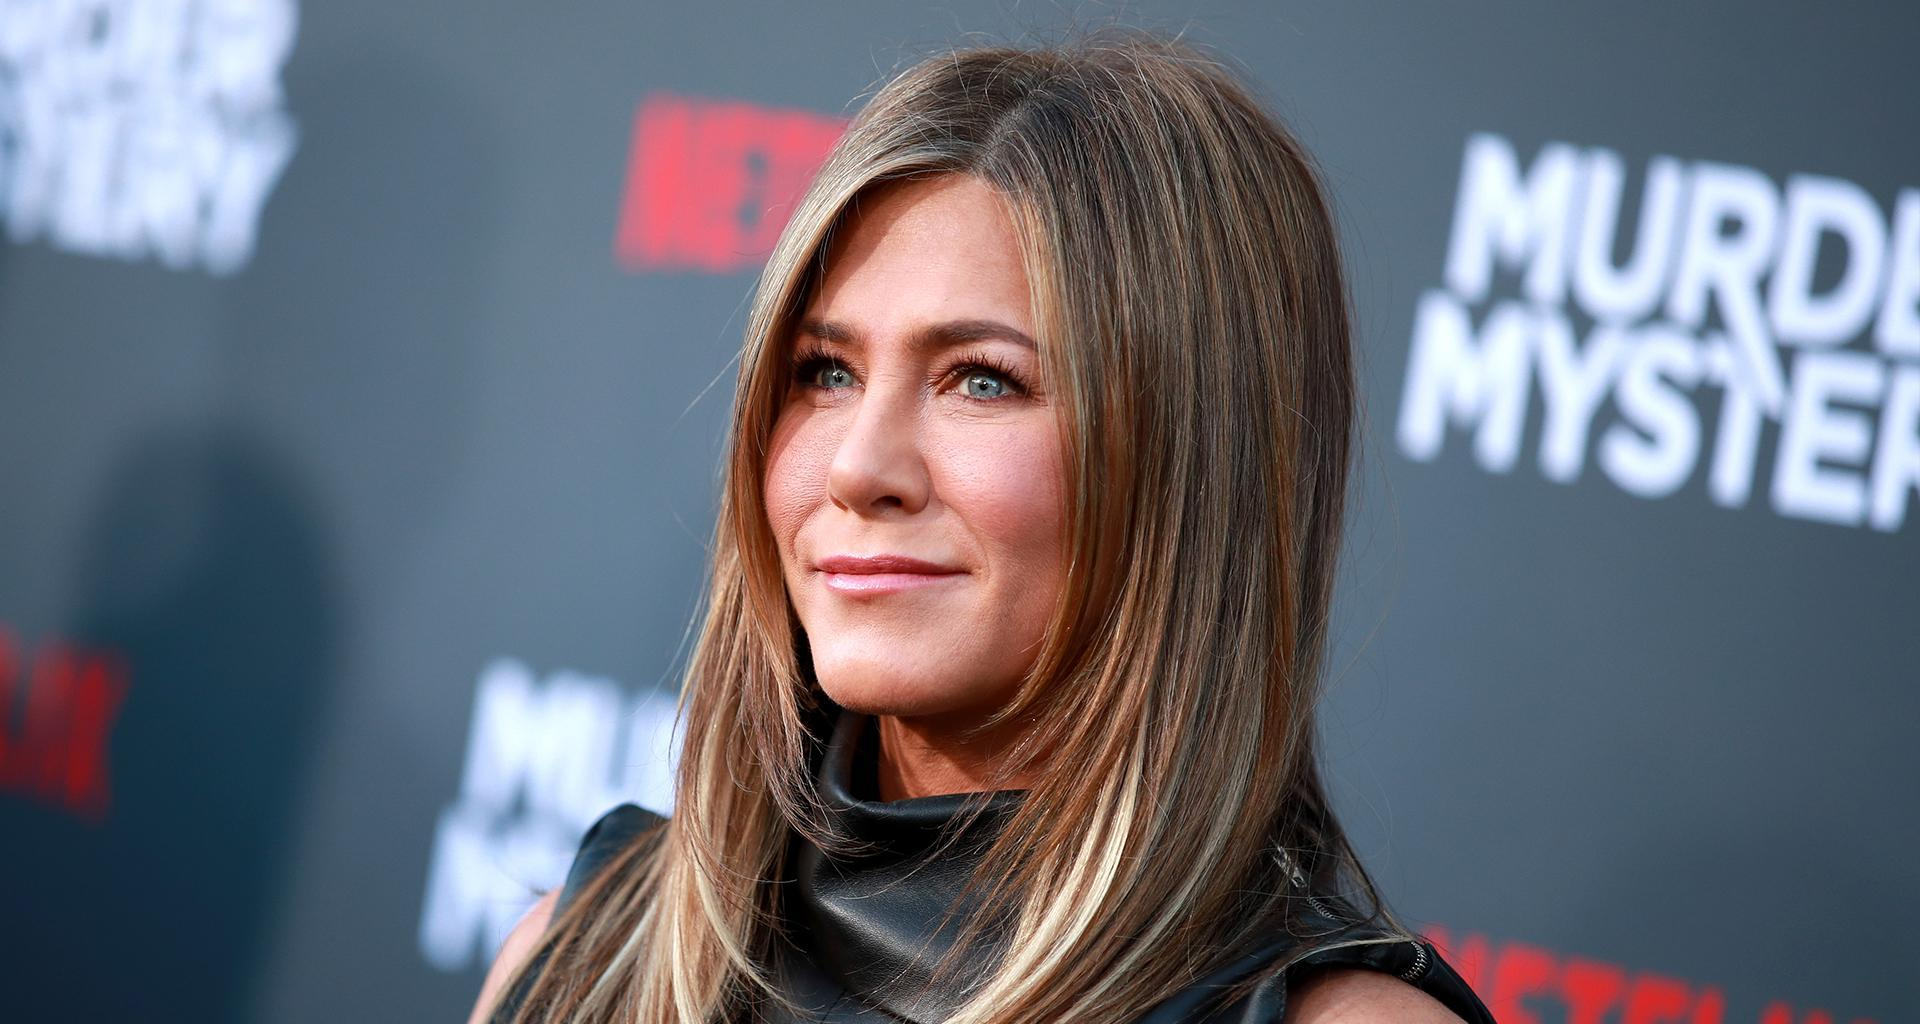 Jennifer Aniston Says She Wants A 'Friends' Reboot - Admits She Misses The Show